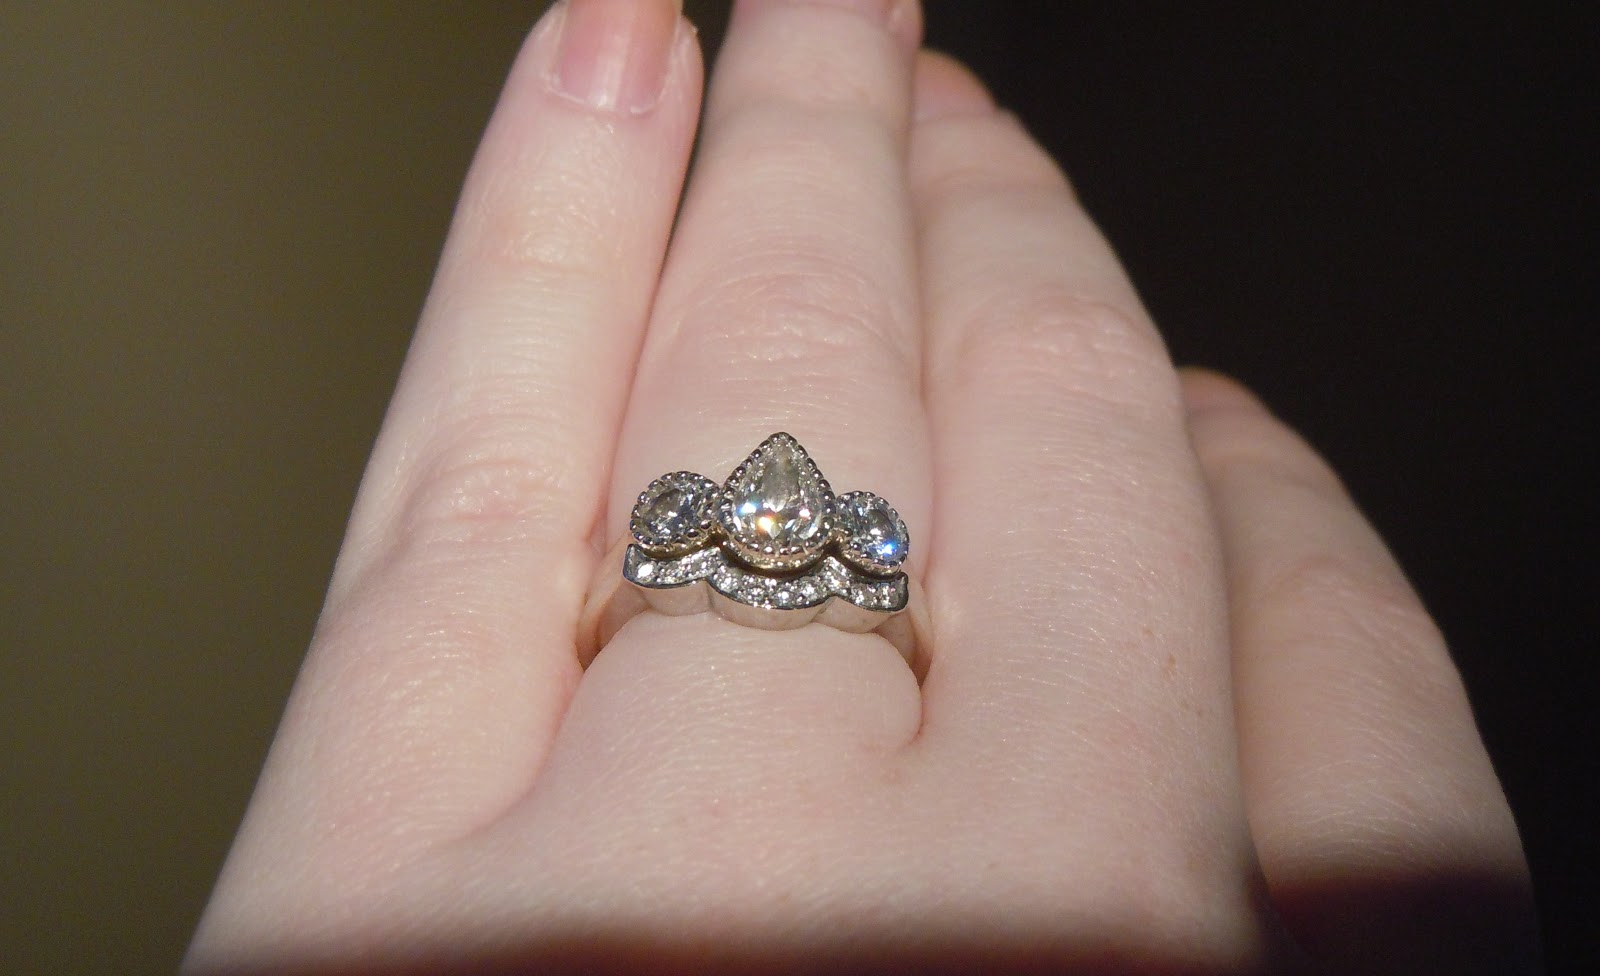 Delighted: Wedding Ring Story